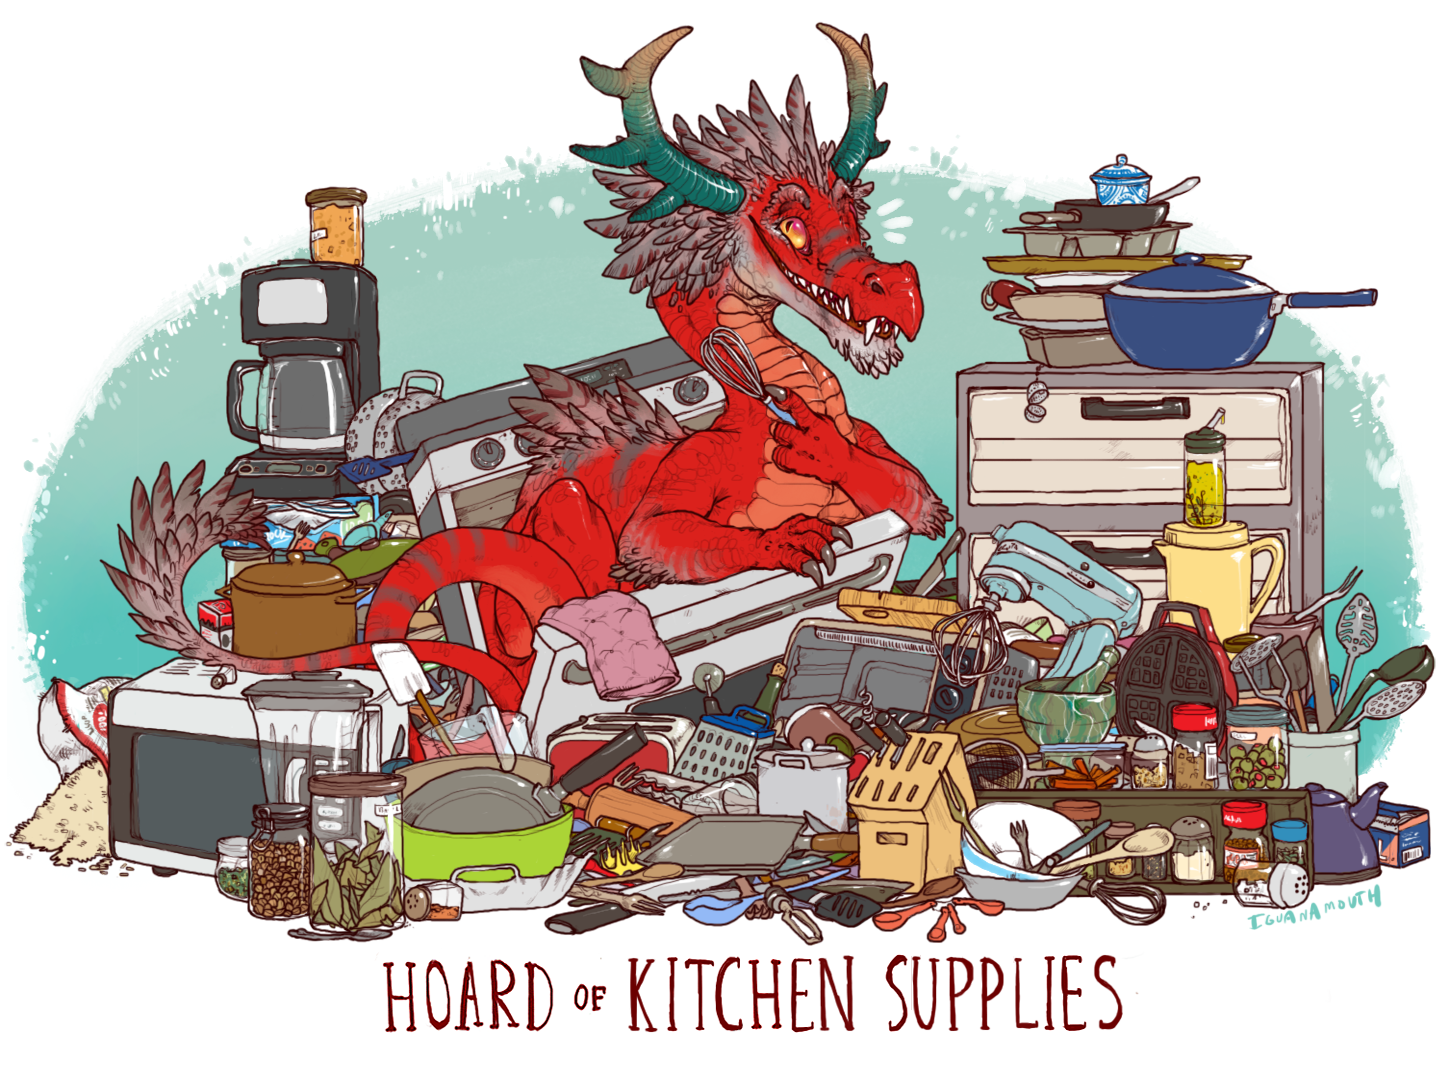 This Dragon Probably Doesnt Even Know What Half Of These Things Are For A Wafflemaker Lets Be Real Here Size 11 B Dragon Art Fantasy Dragon Cute Dragons